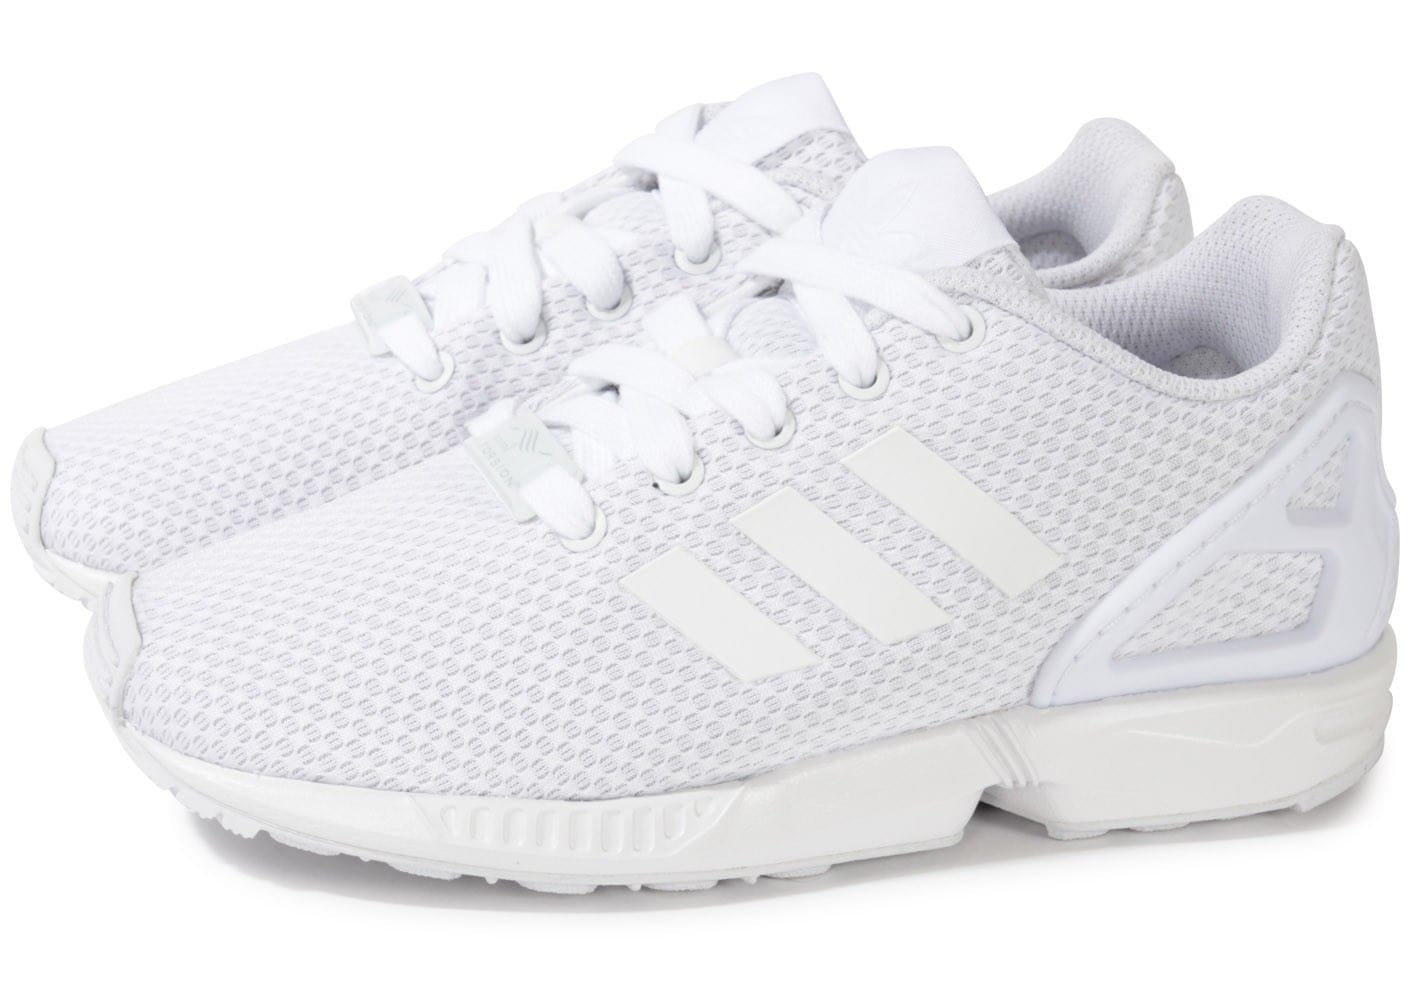 Chaussures Adidas ZX 40 blanches enfant 24 EU Chaussures Adidas ZX Flux Smooth noires femme Chaussures